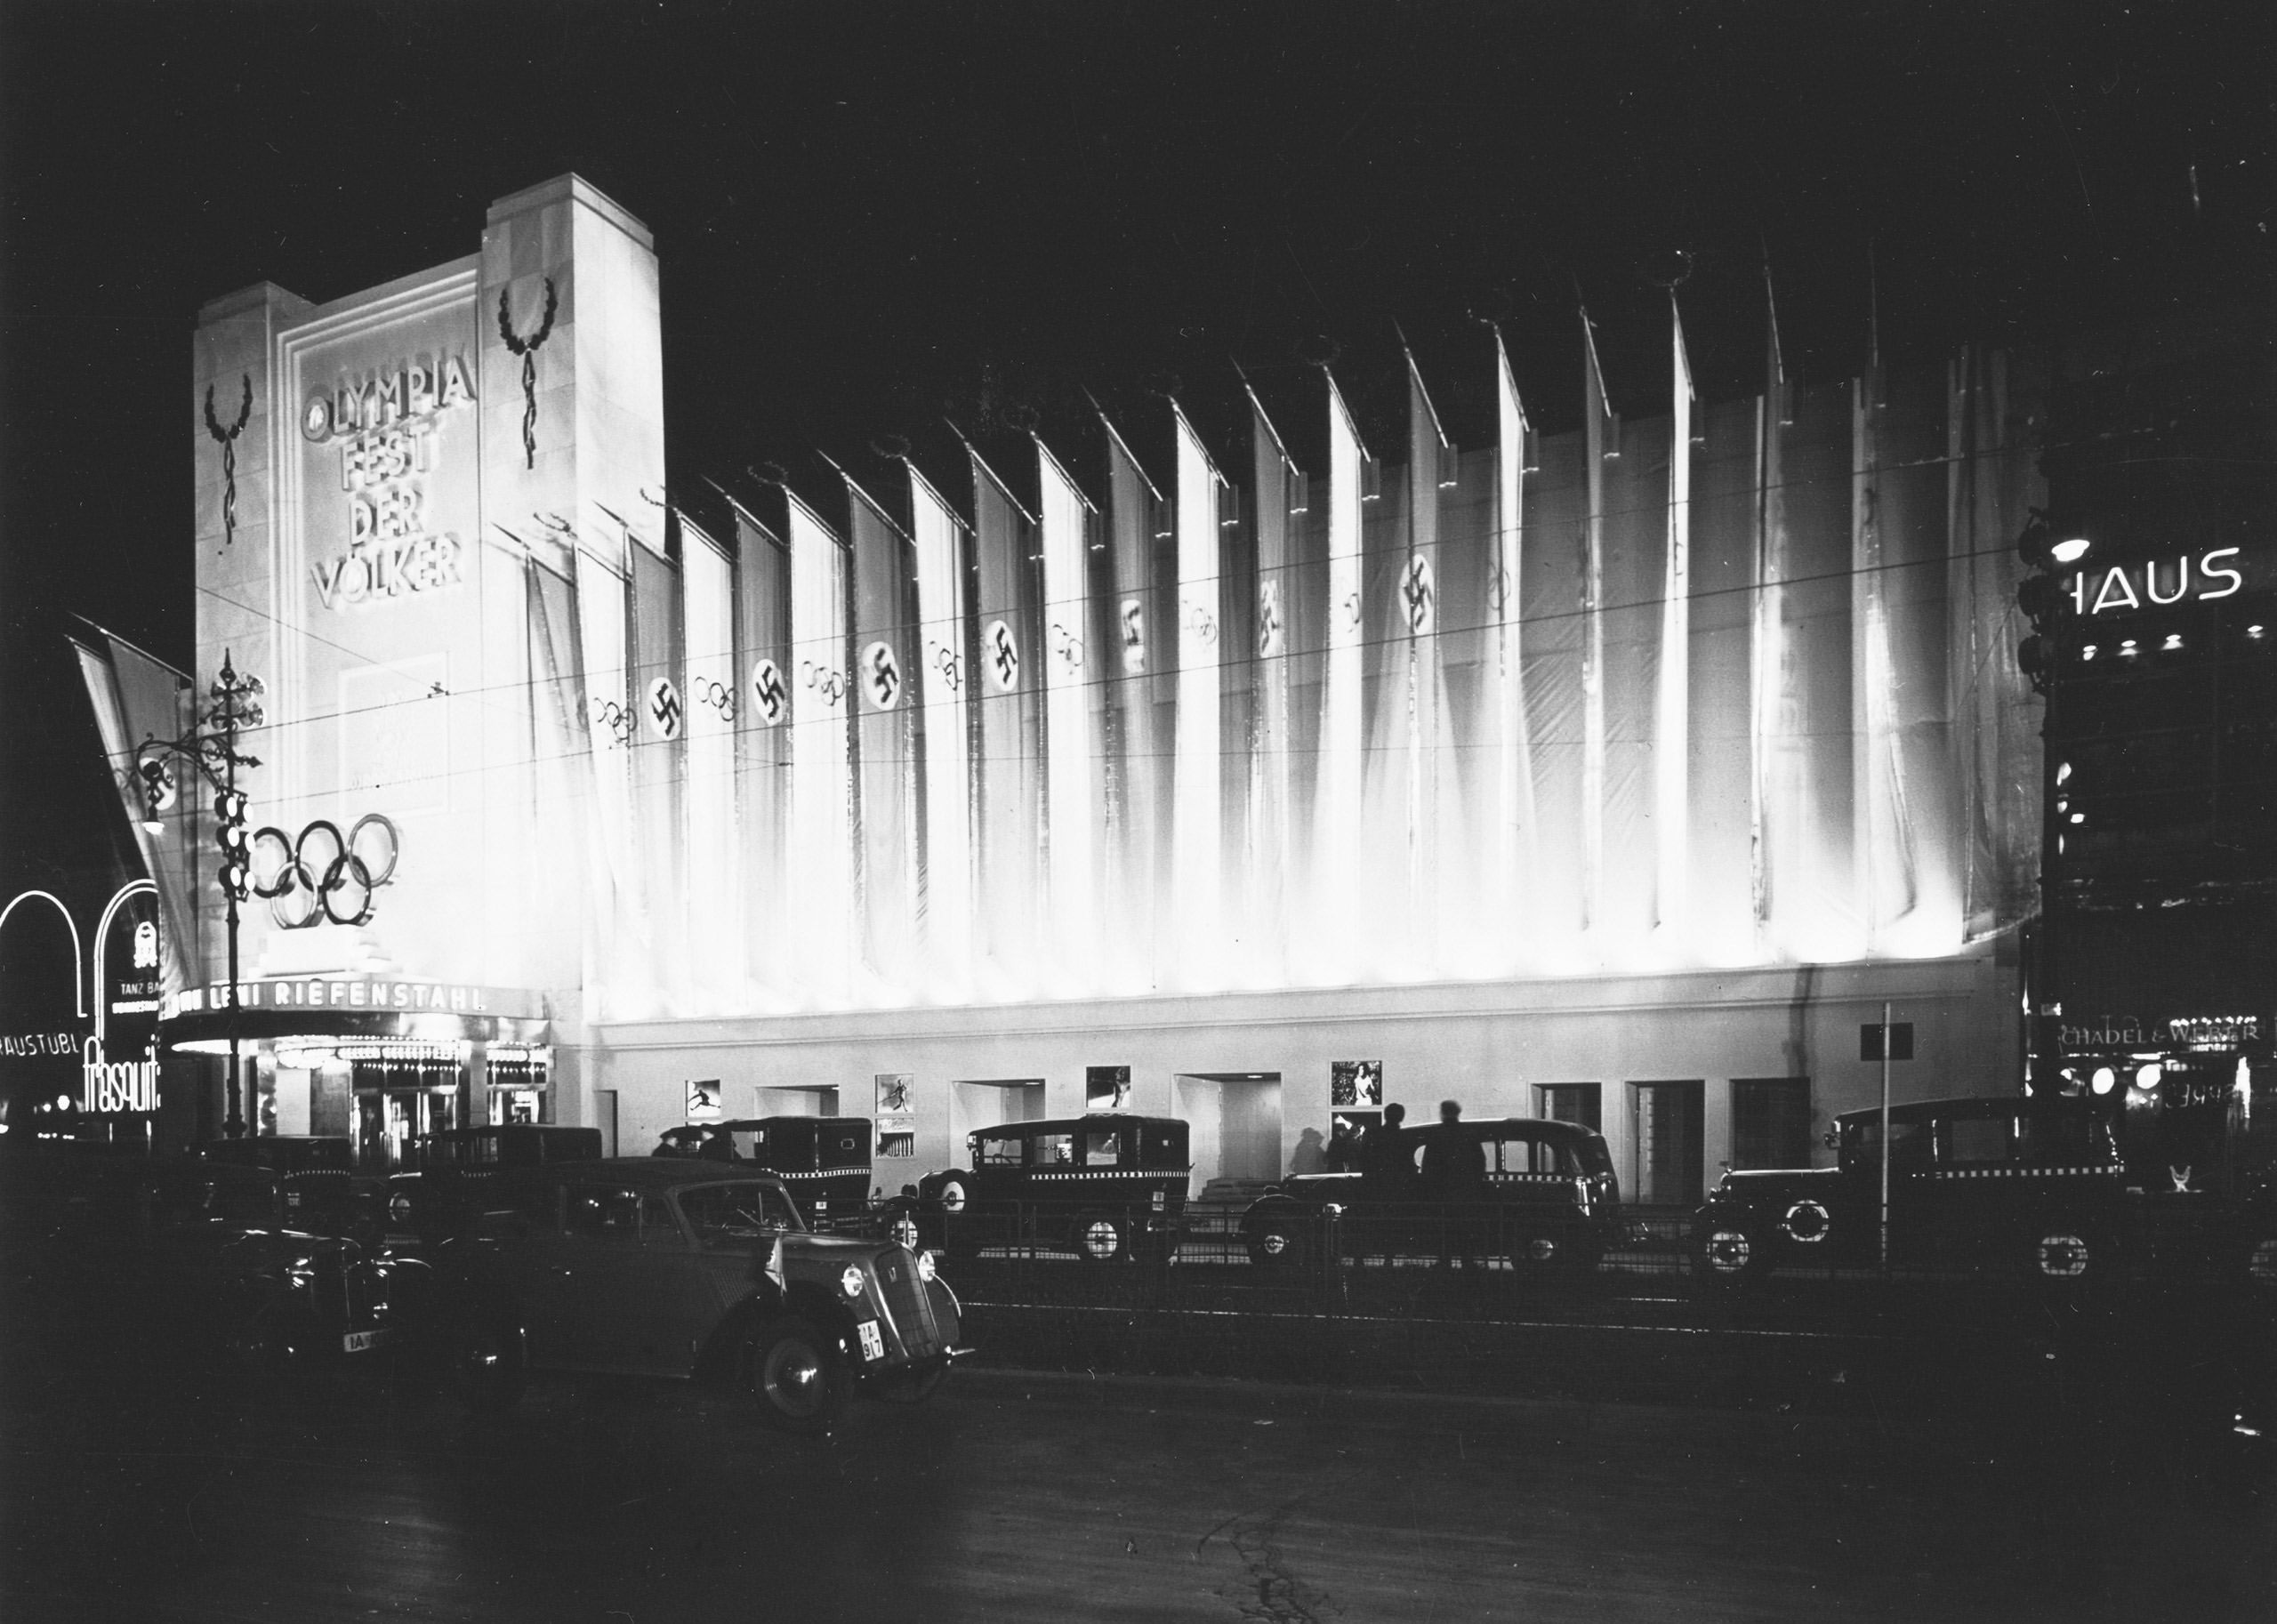 Black and white photo: illuminated flags of the German Reich in front of a cinema building at night